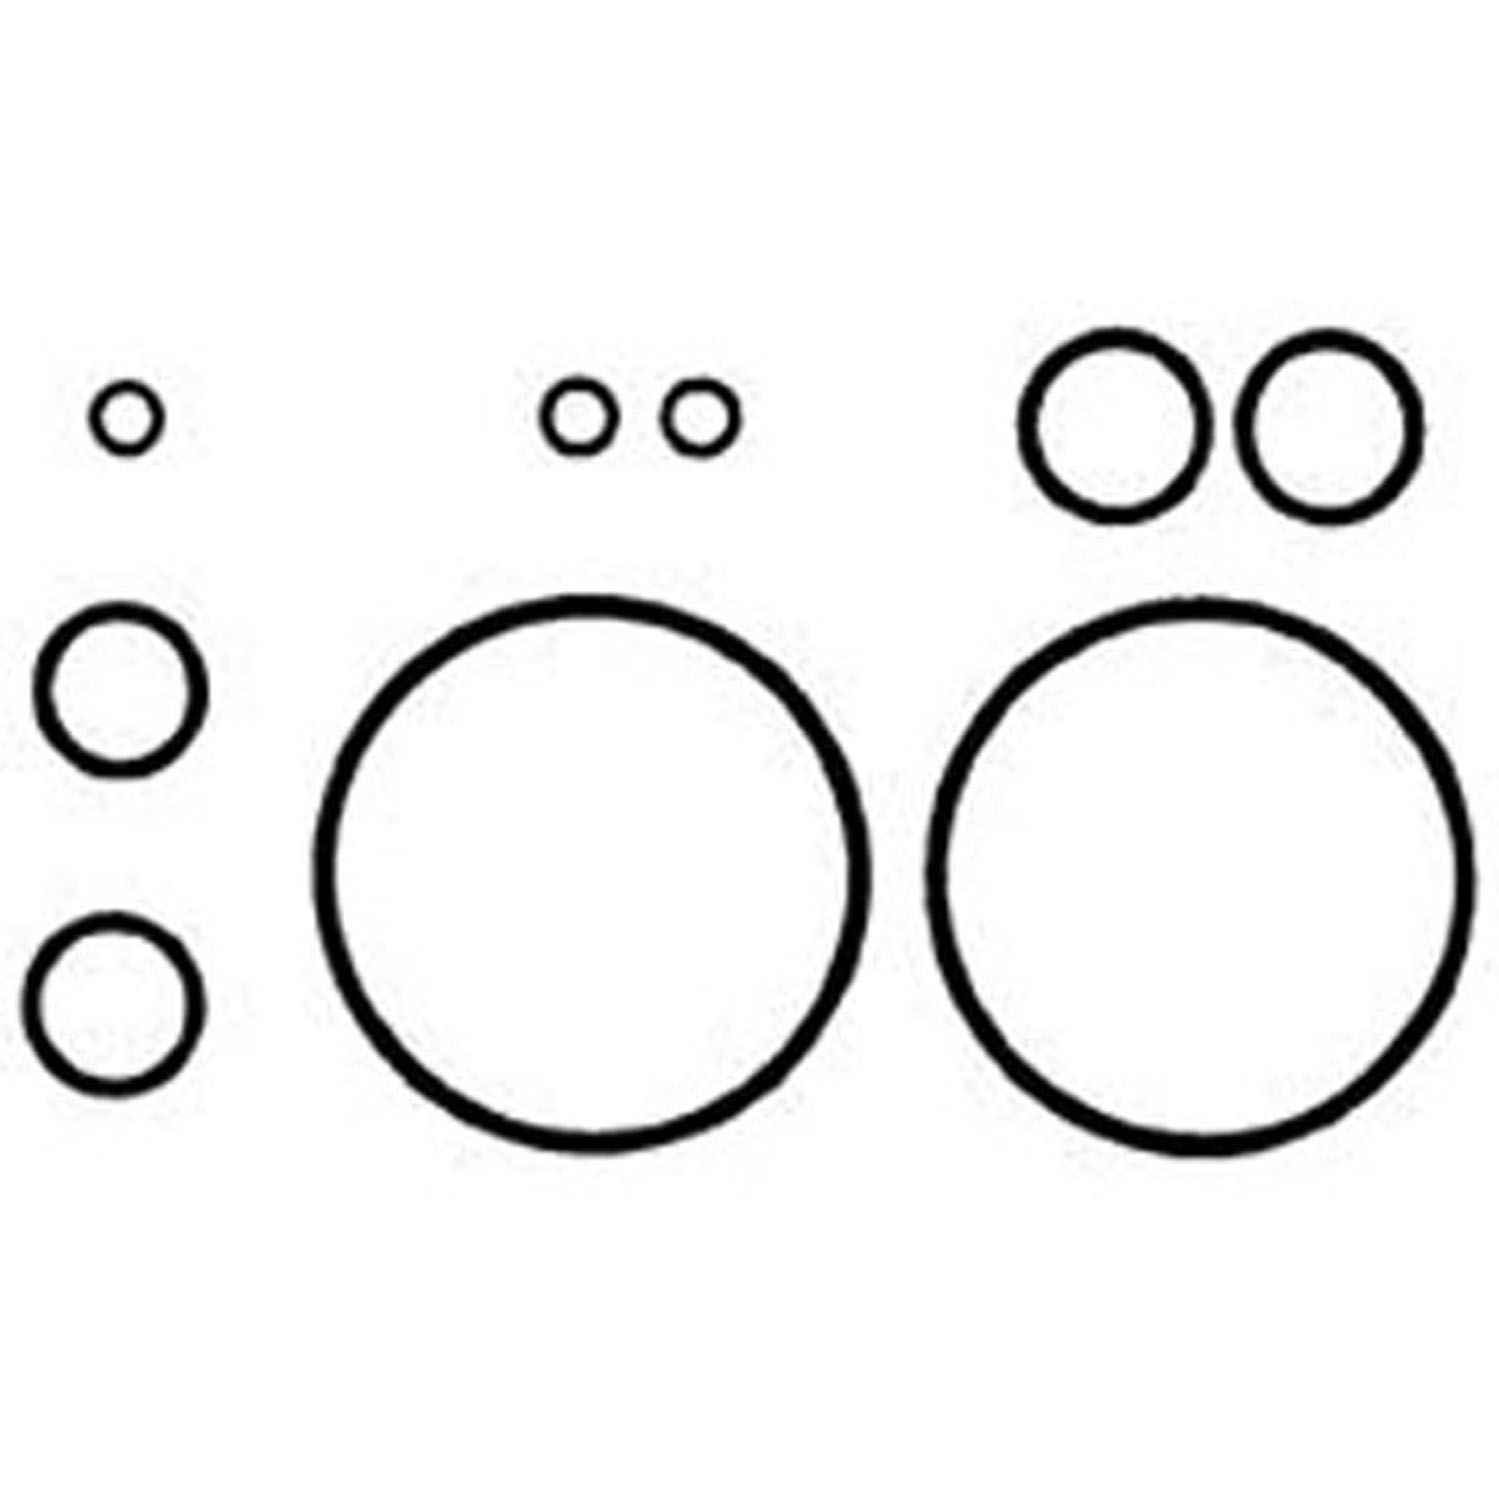 Oring Seal and Gasket Kit A6 OR KIT